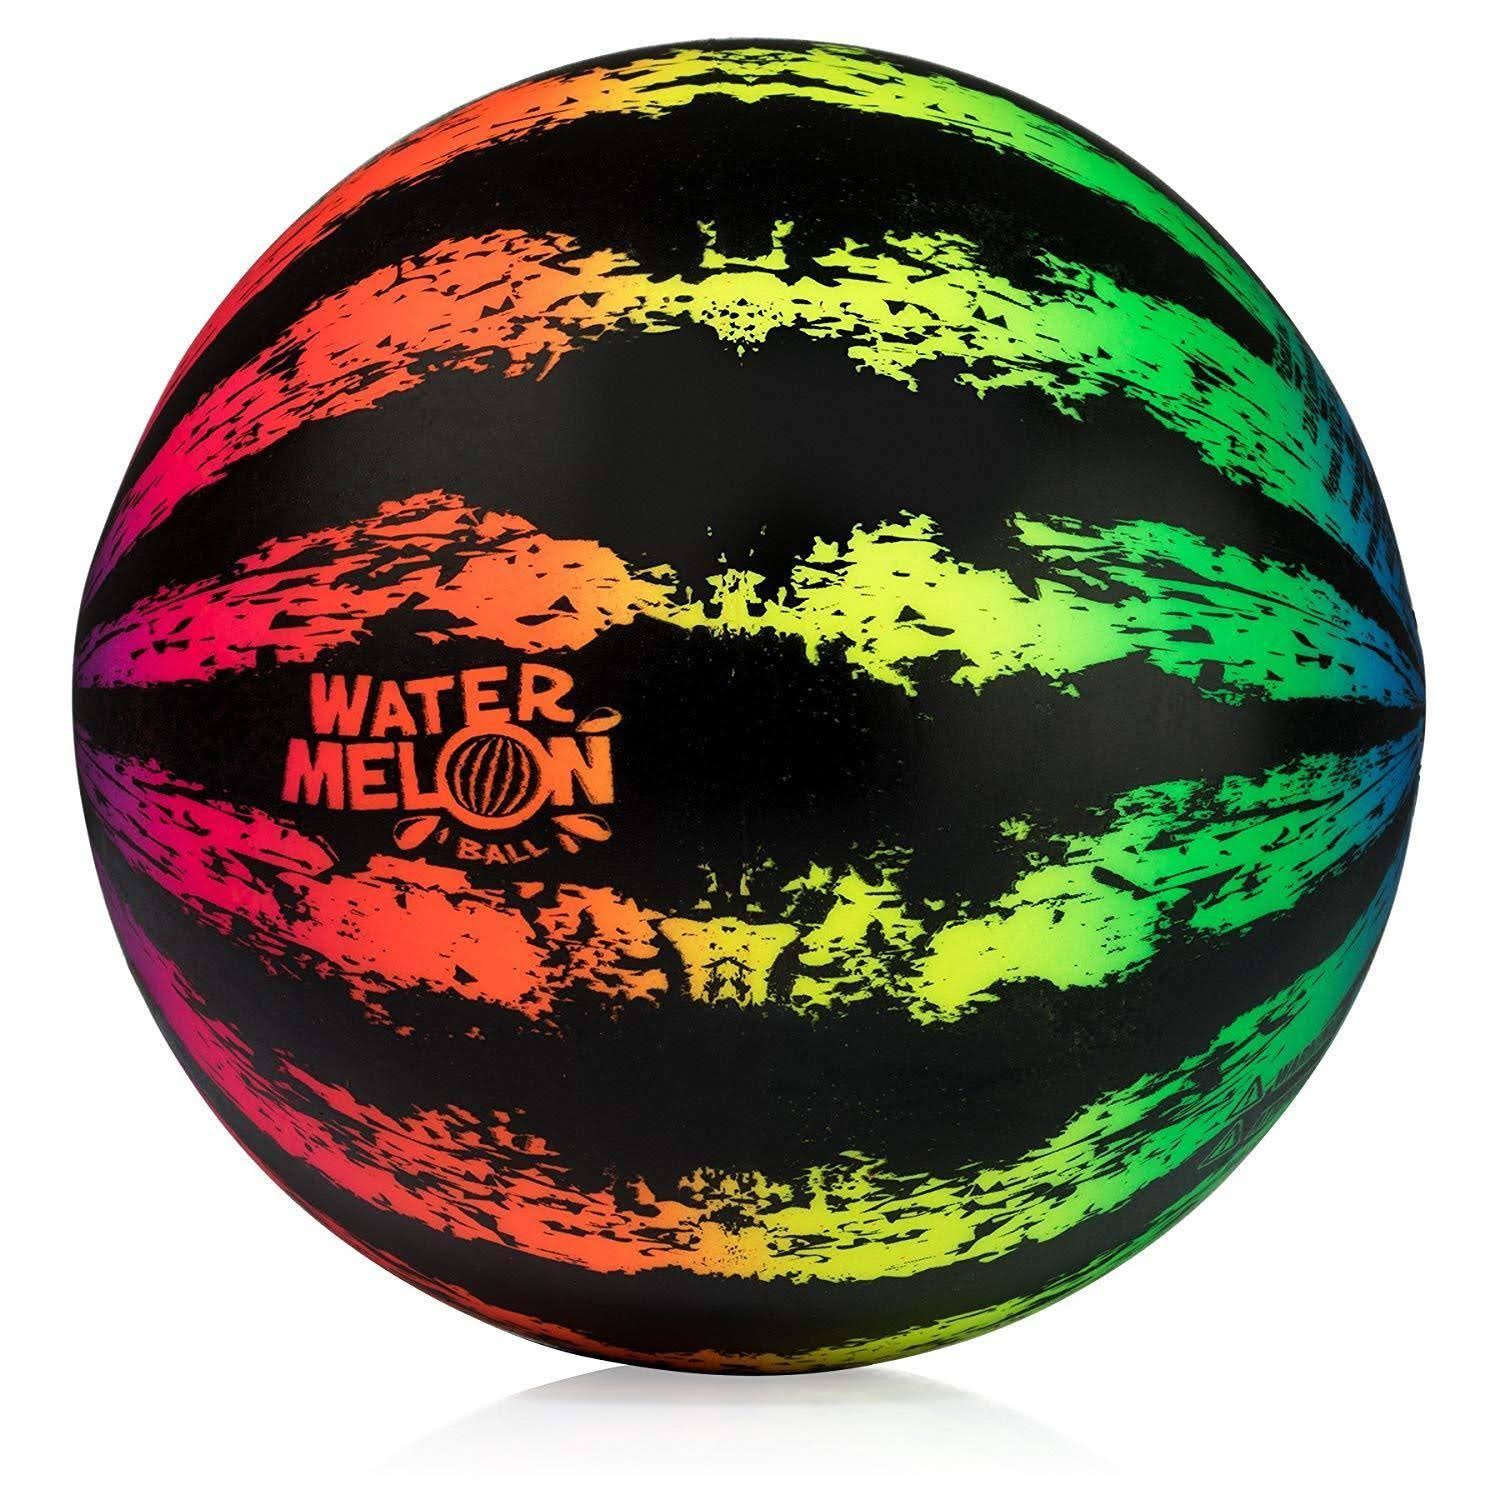 Watermelon Ball Jr - Pool Toy - The Ball You Fill with Water,